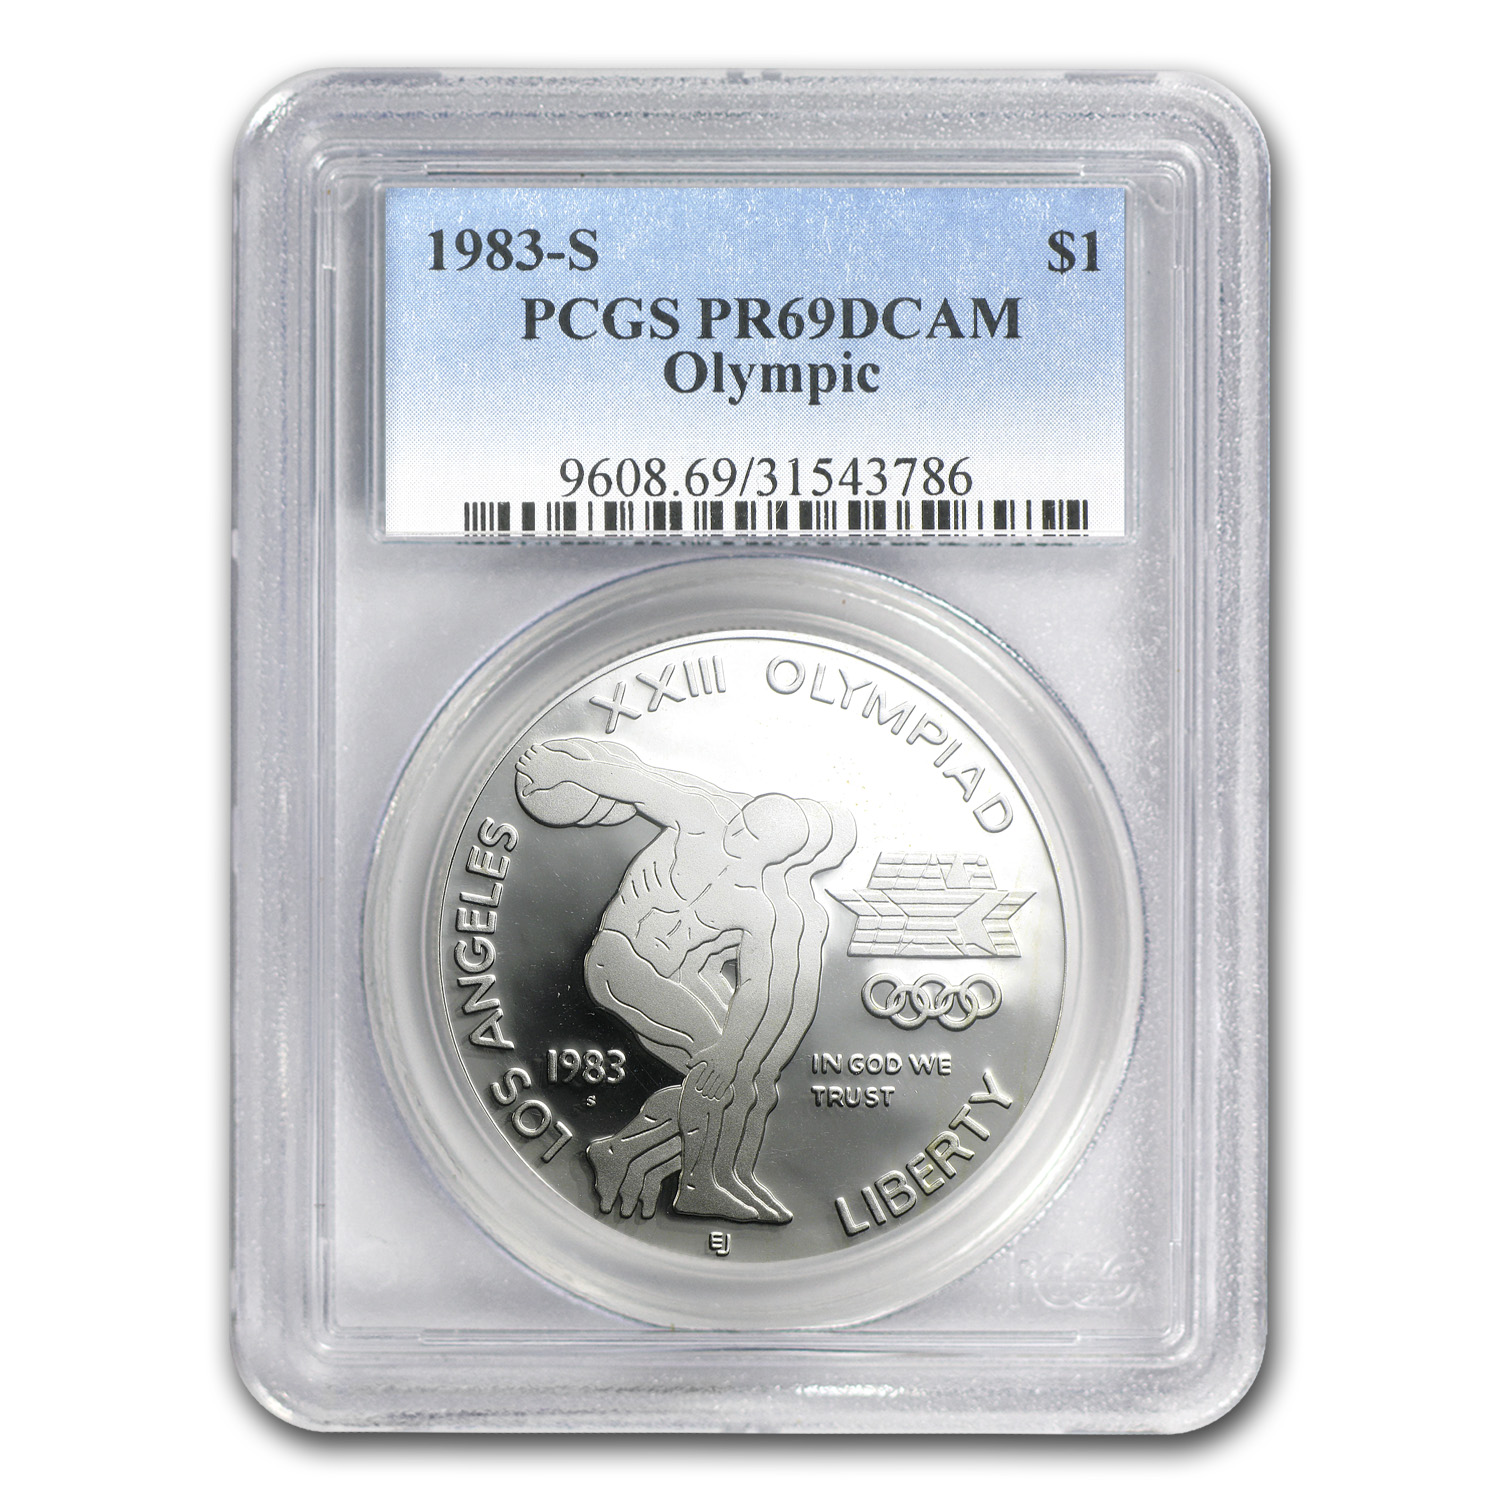 1983-S Olympic $1 Silver Commemorative PR-69 PCGS